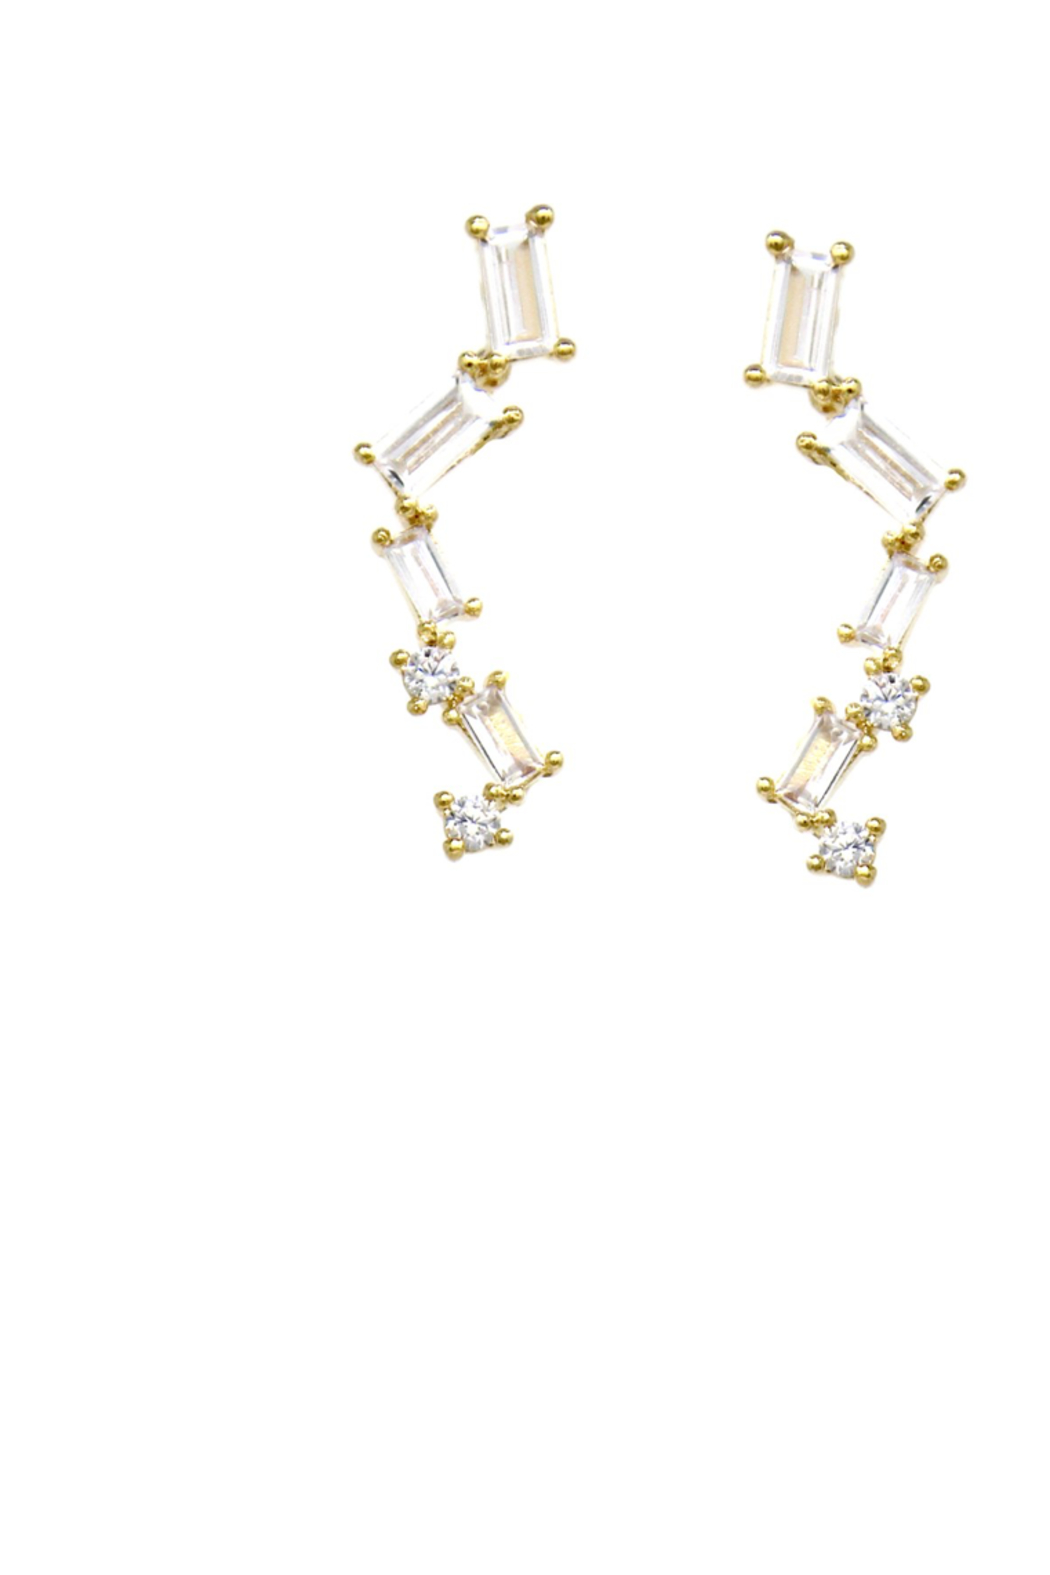 US Jewelry House Pave Bar Gold Dipped Earrings - Main Image